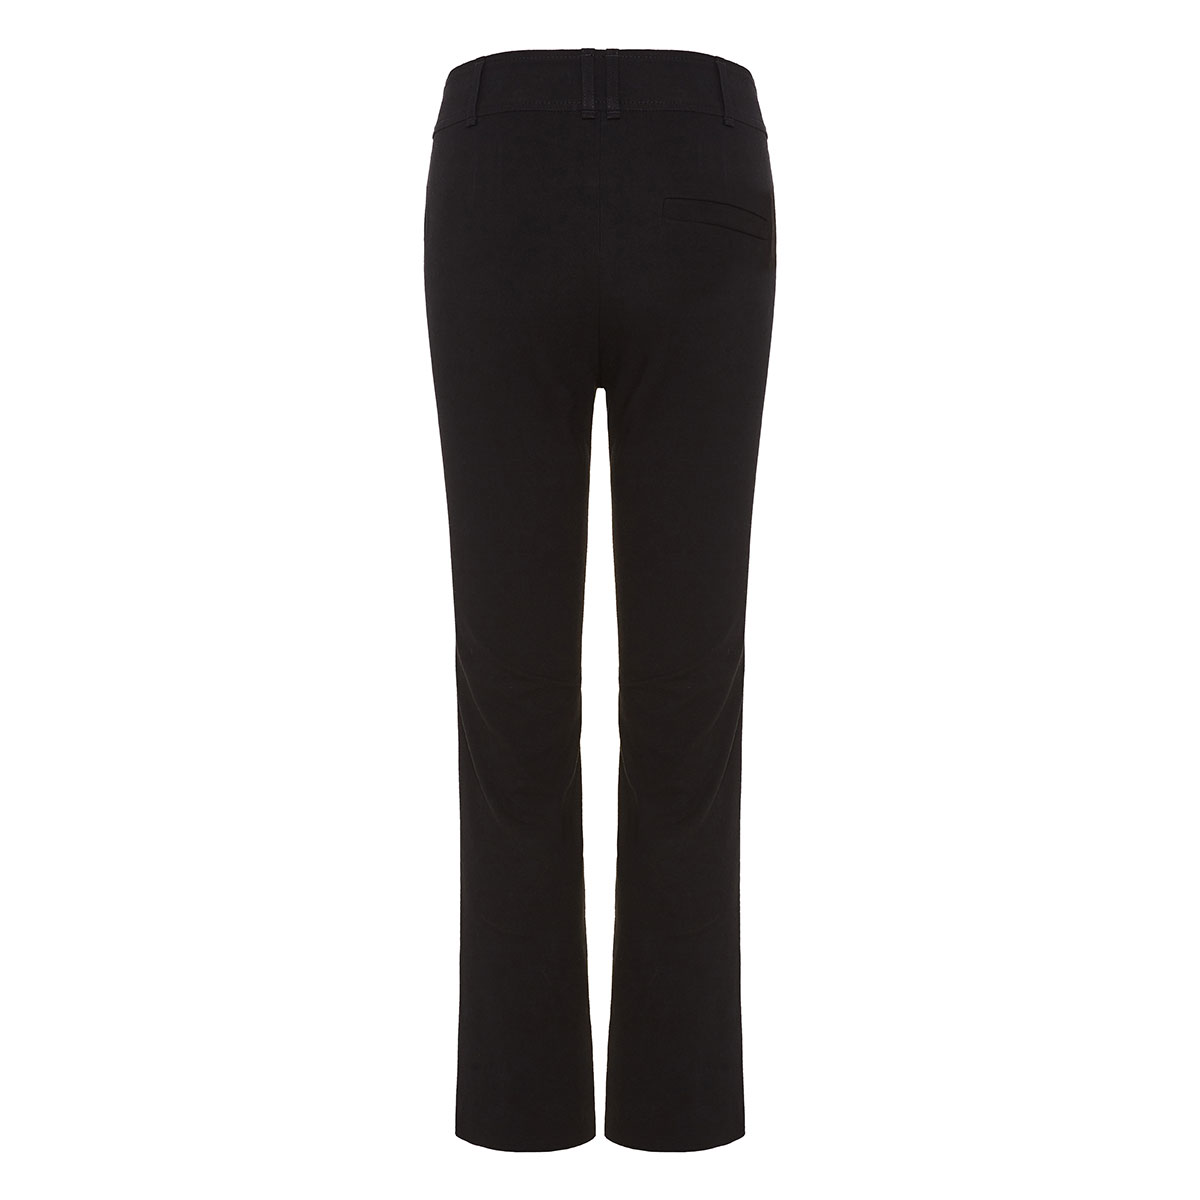 High-waist cropped flared trousers